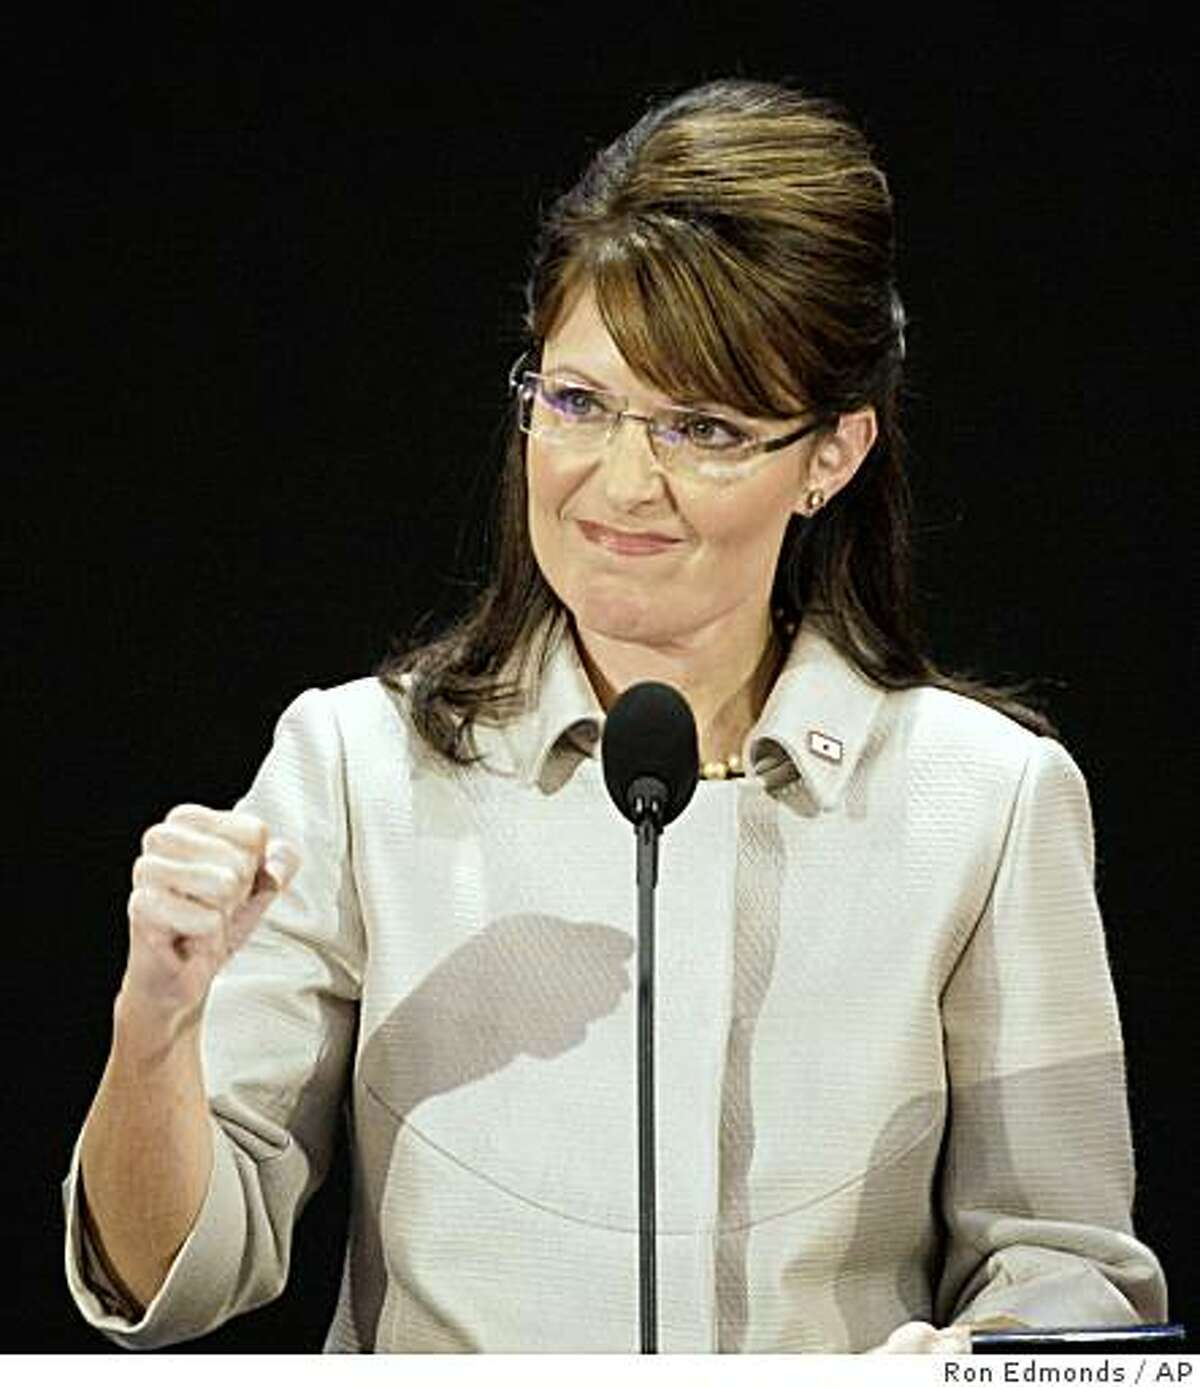 Republican vice presidential candidate Sarah Palin pumps her fist during her speech at the Republican National Convention.